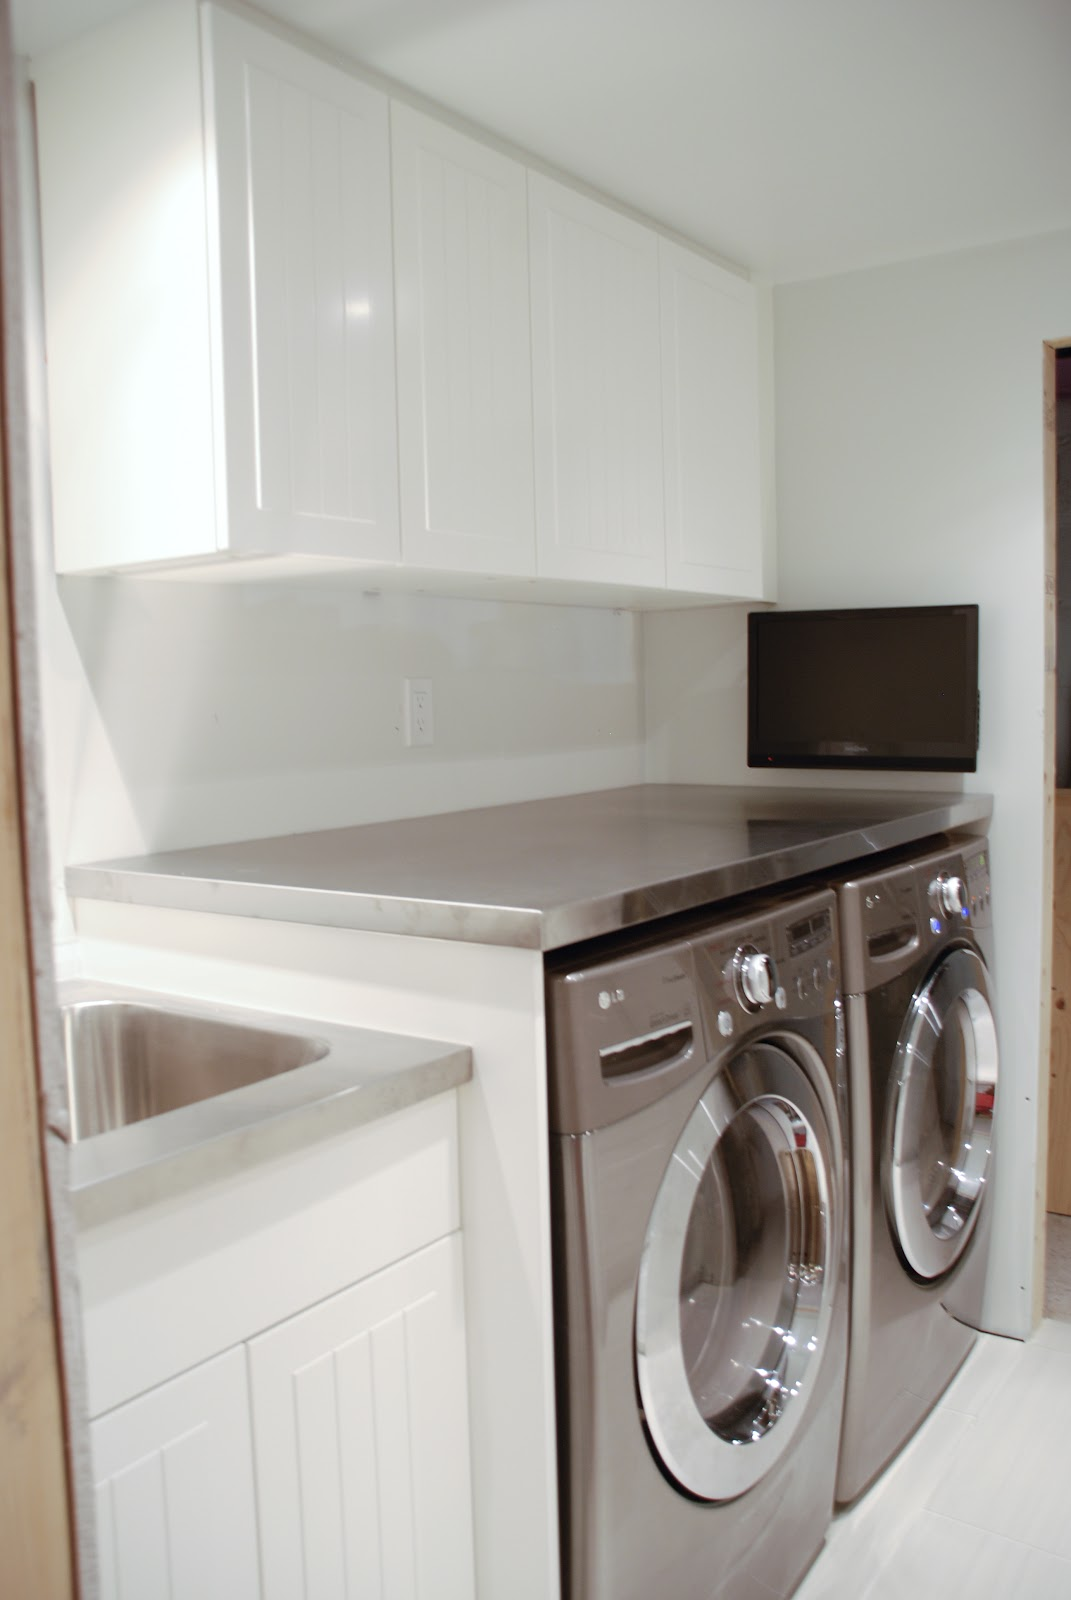 Countertop Options For Laundry Room : ... is actually the substrate for our countertop and we clad it with